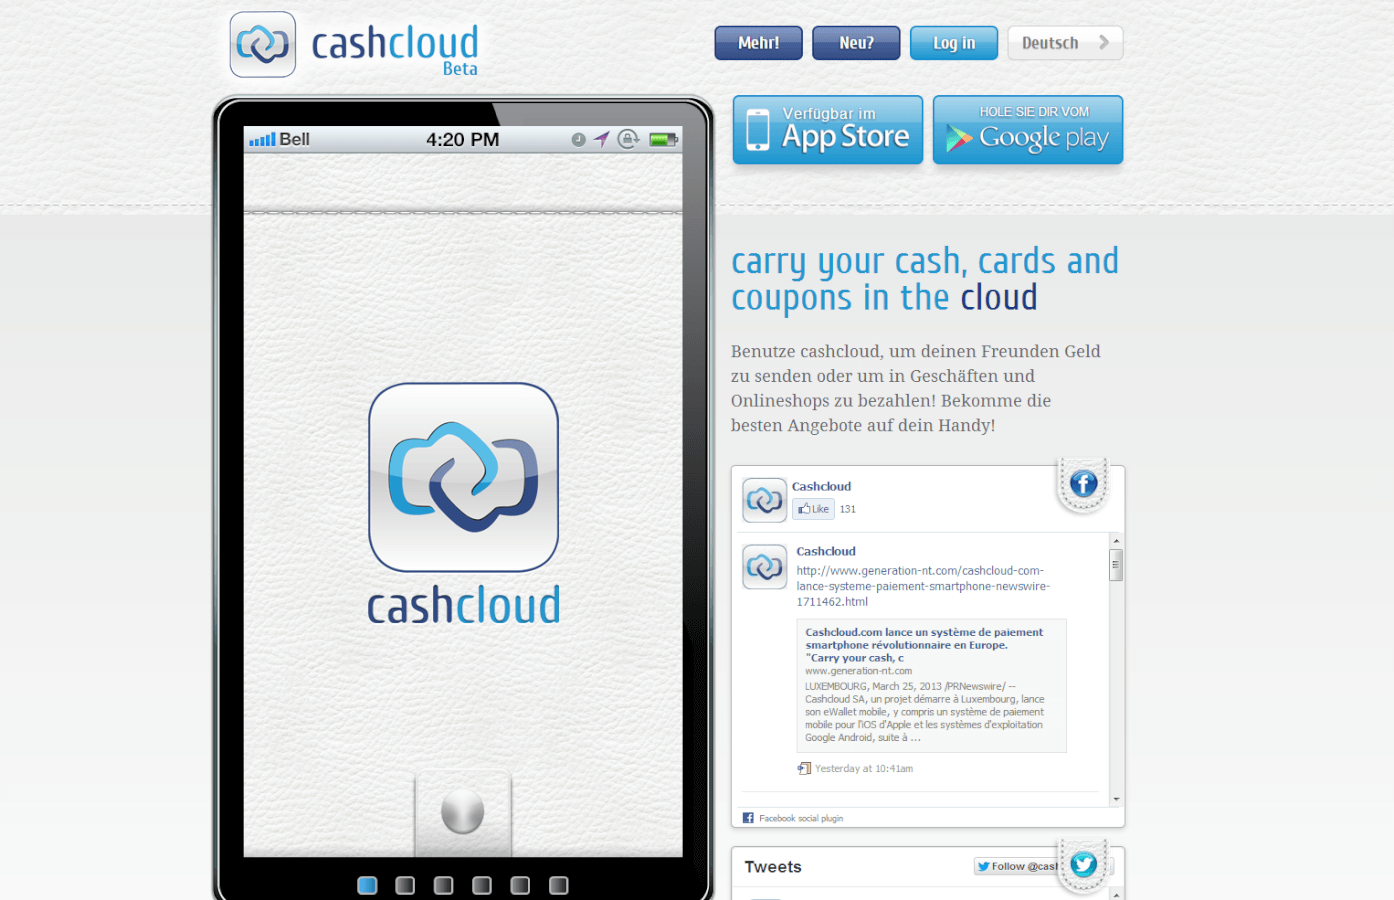 cashcloud, Banking IT Innovation Award 2014 !